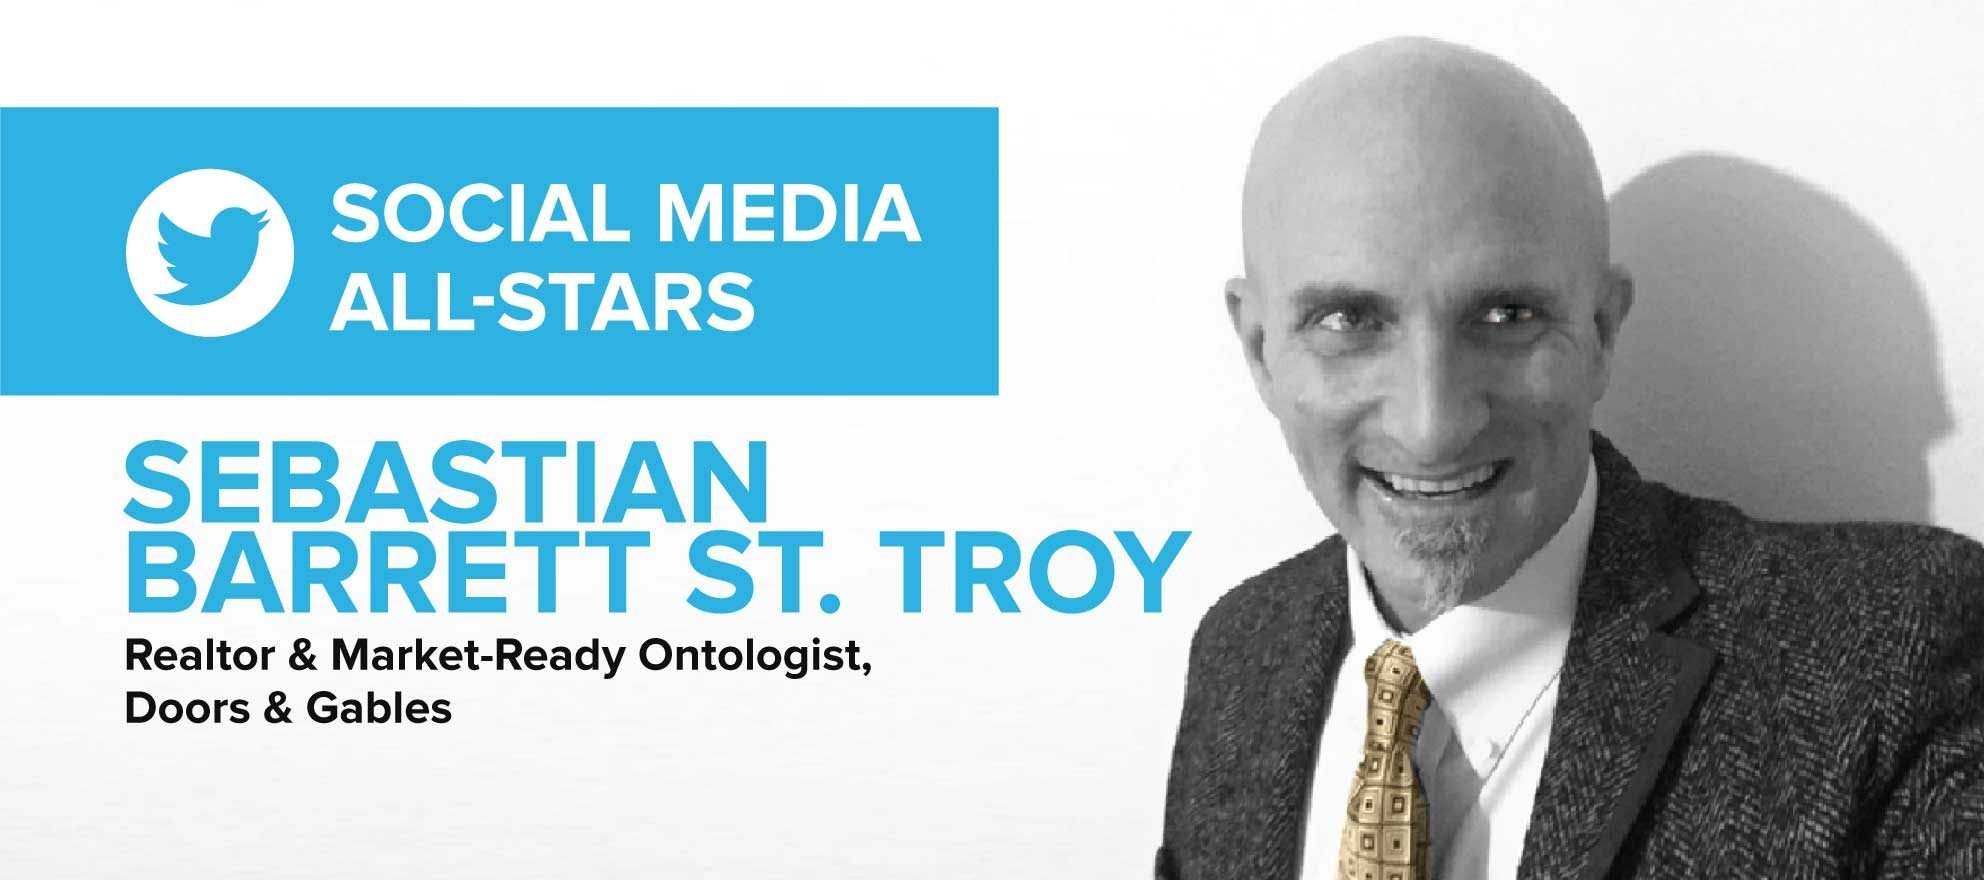 Sebastian Barrett St. Troy on how smaller companies lack direction on social media